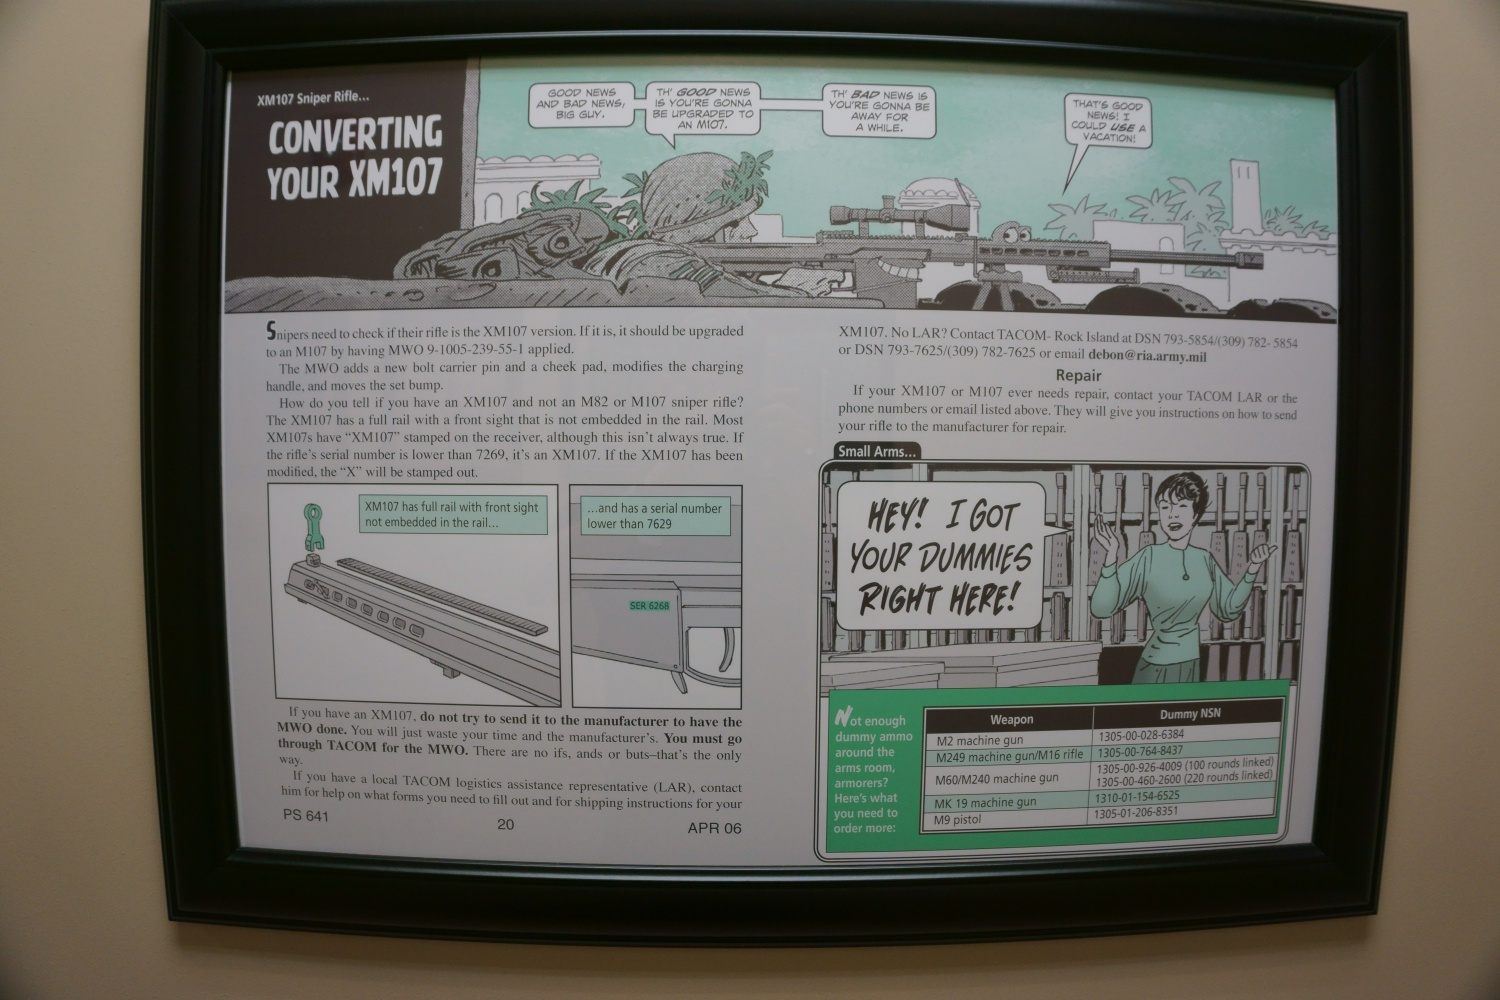 Currently the U.S. Military is only using the M107, and not the A1 version, which has several enhancements done to it. But posters like this are framed all over the factory walls, congratulations and praise coming from military and LE units all over the world.